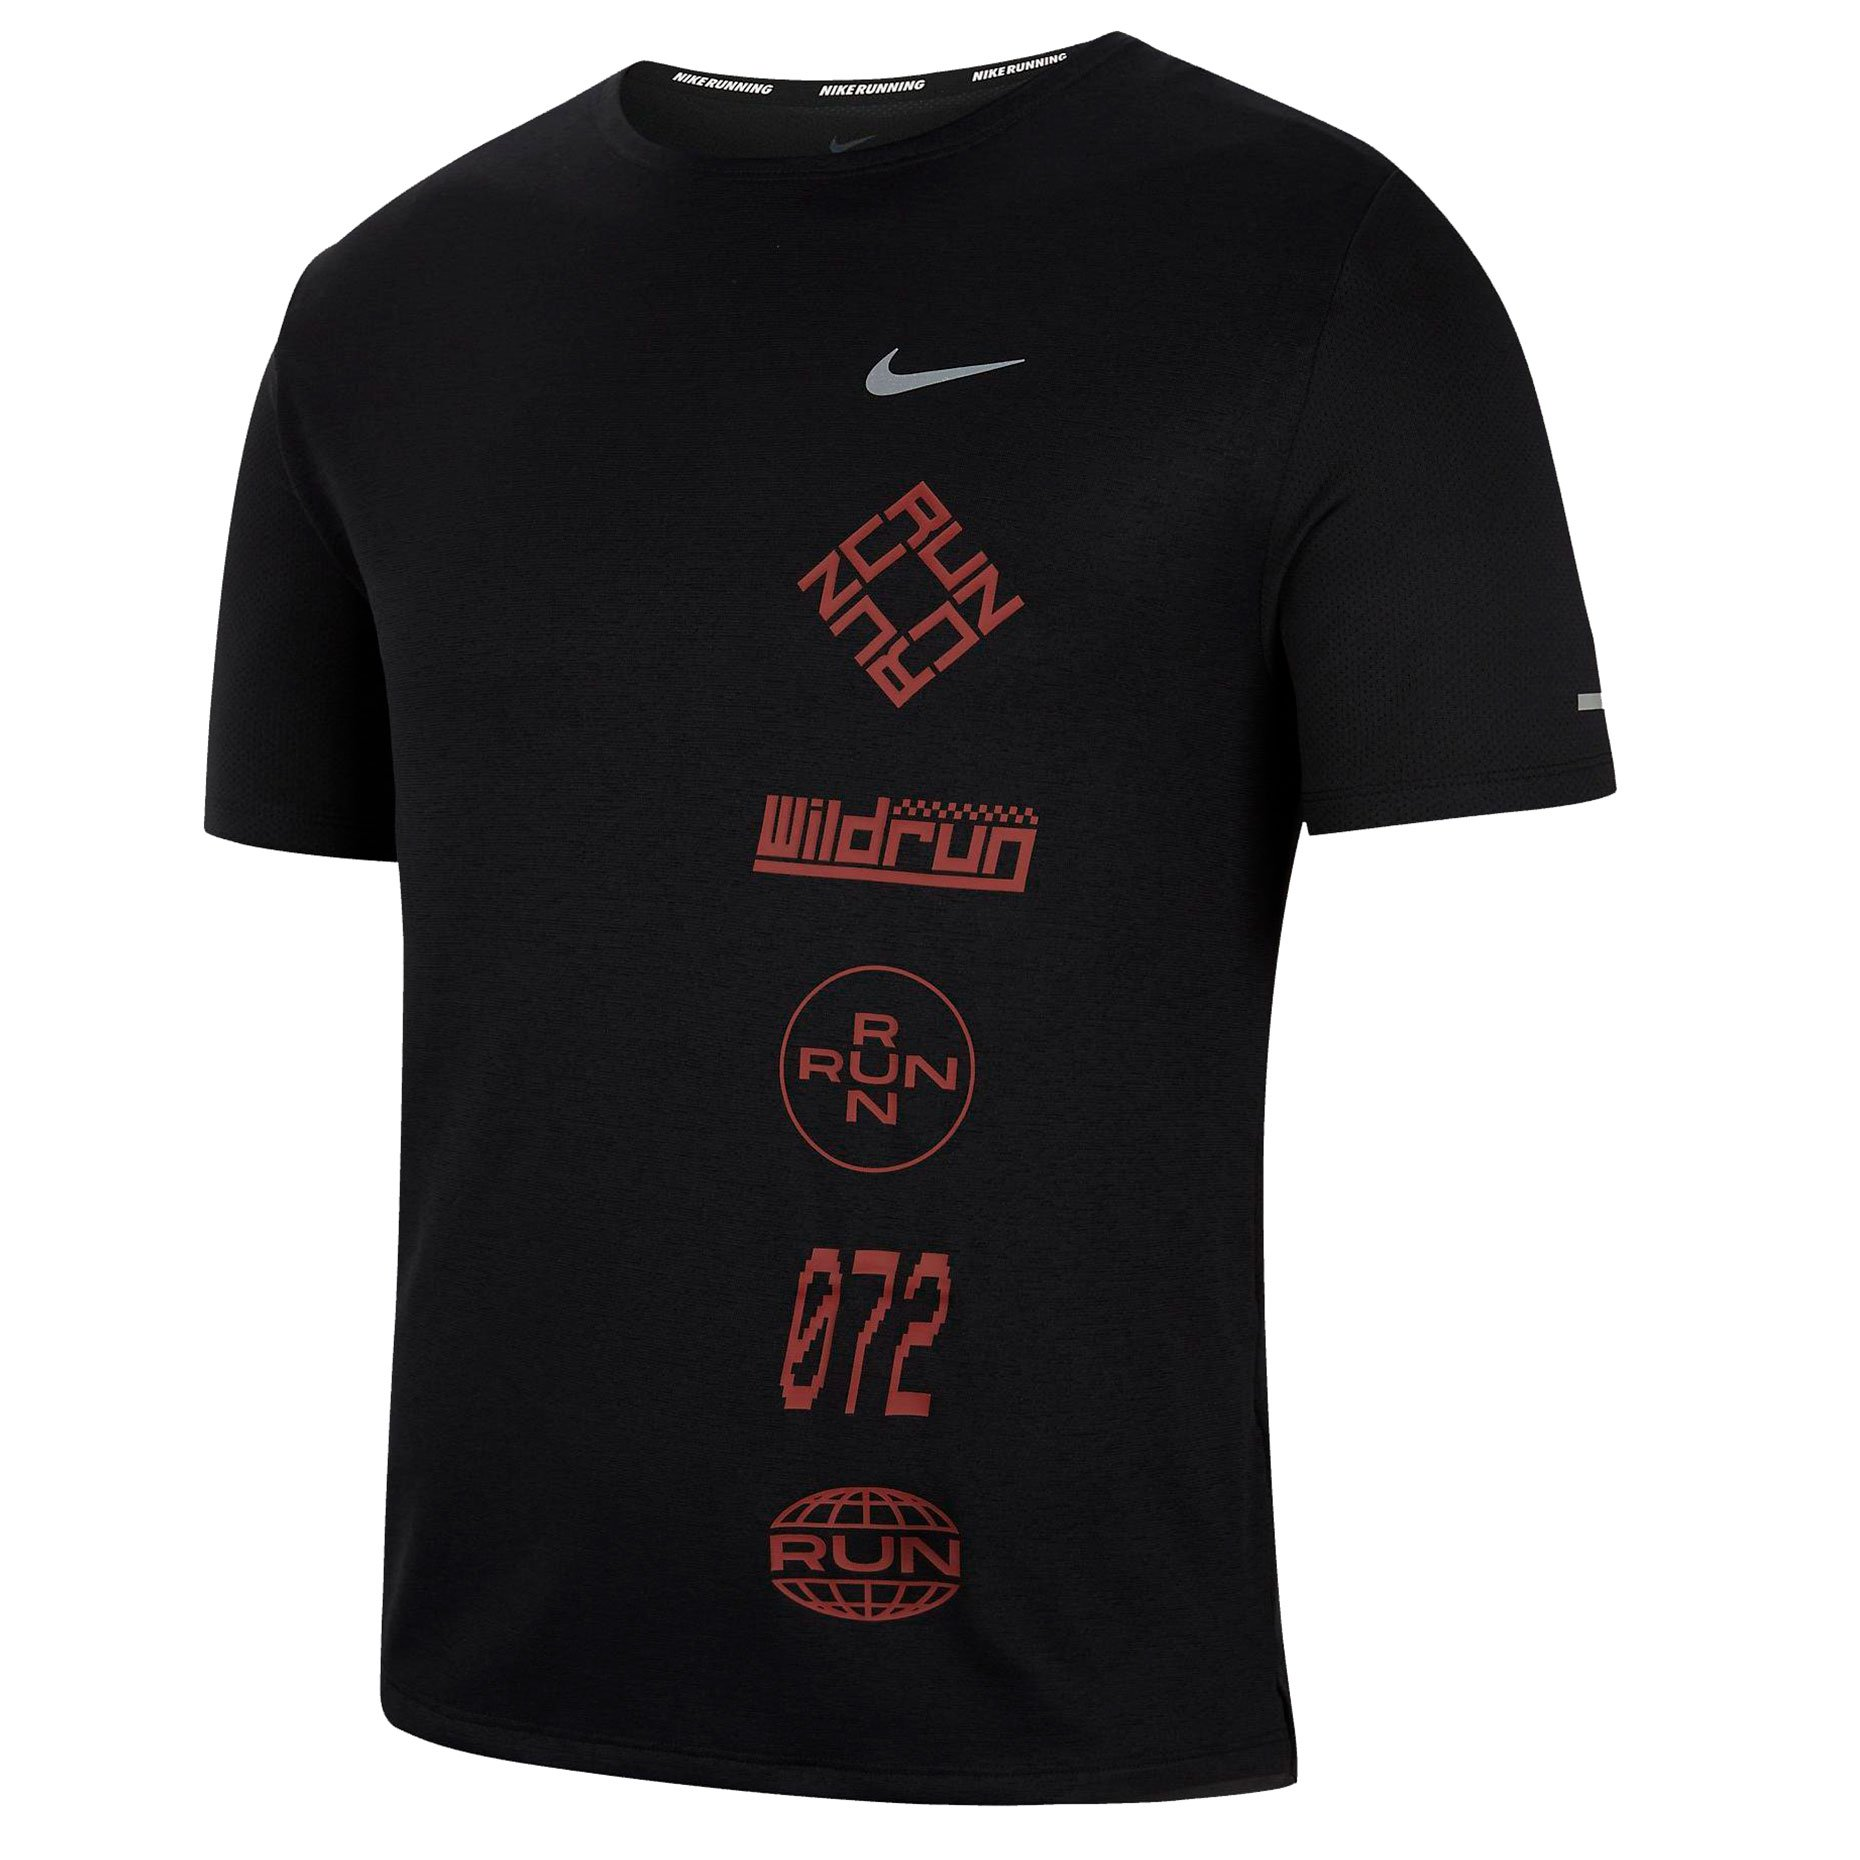 Футболка Nike Dri-FIT Miler Wild Run